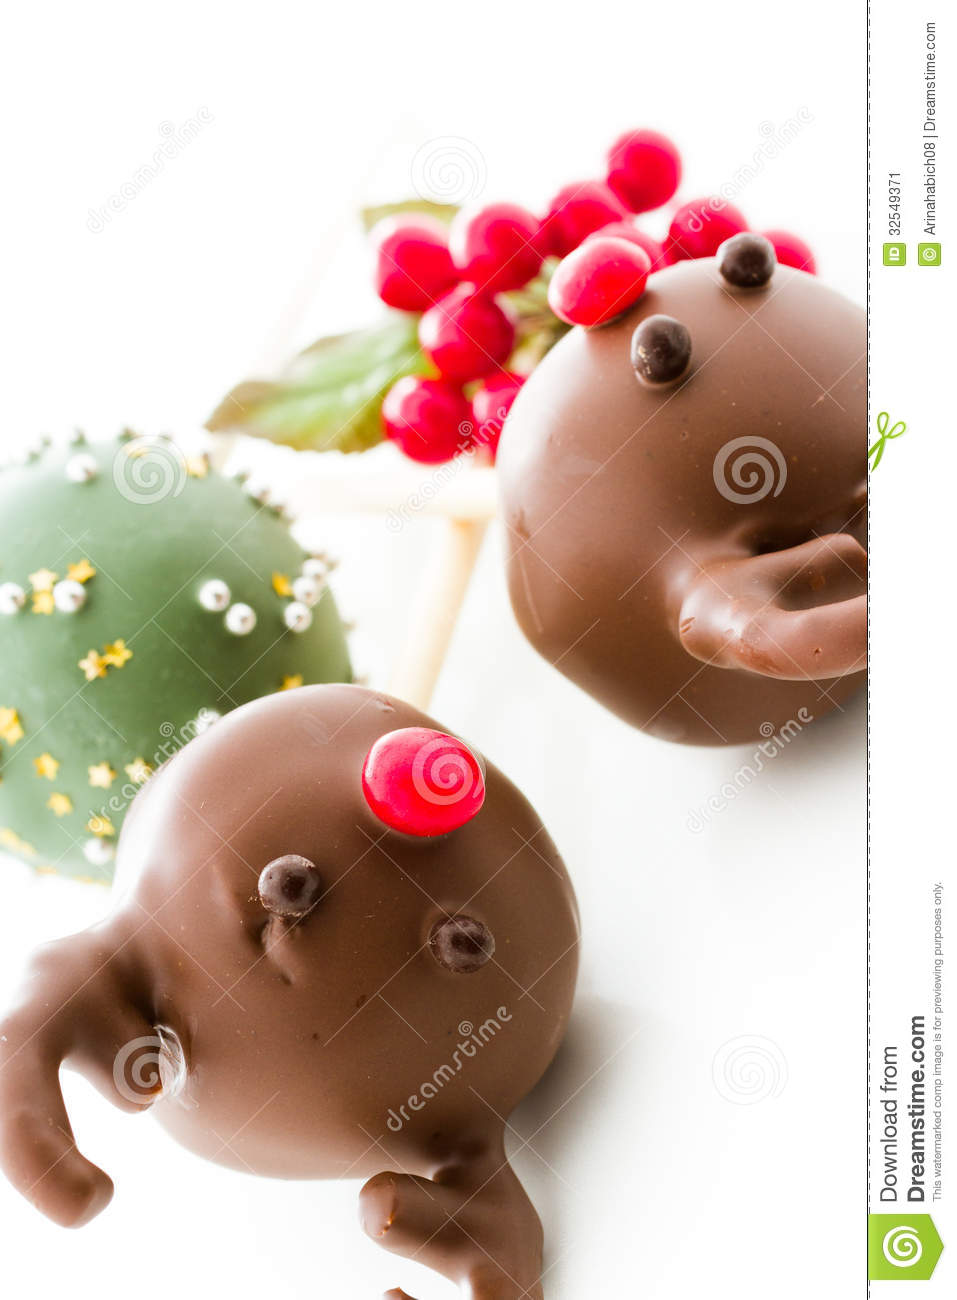 Cake Balls Decorated For Christmas : Cake Pops Stock Image - Image: 32549371